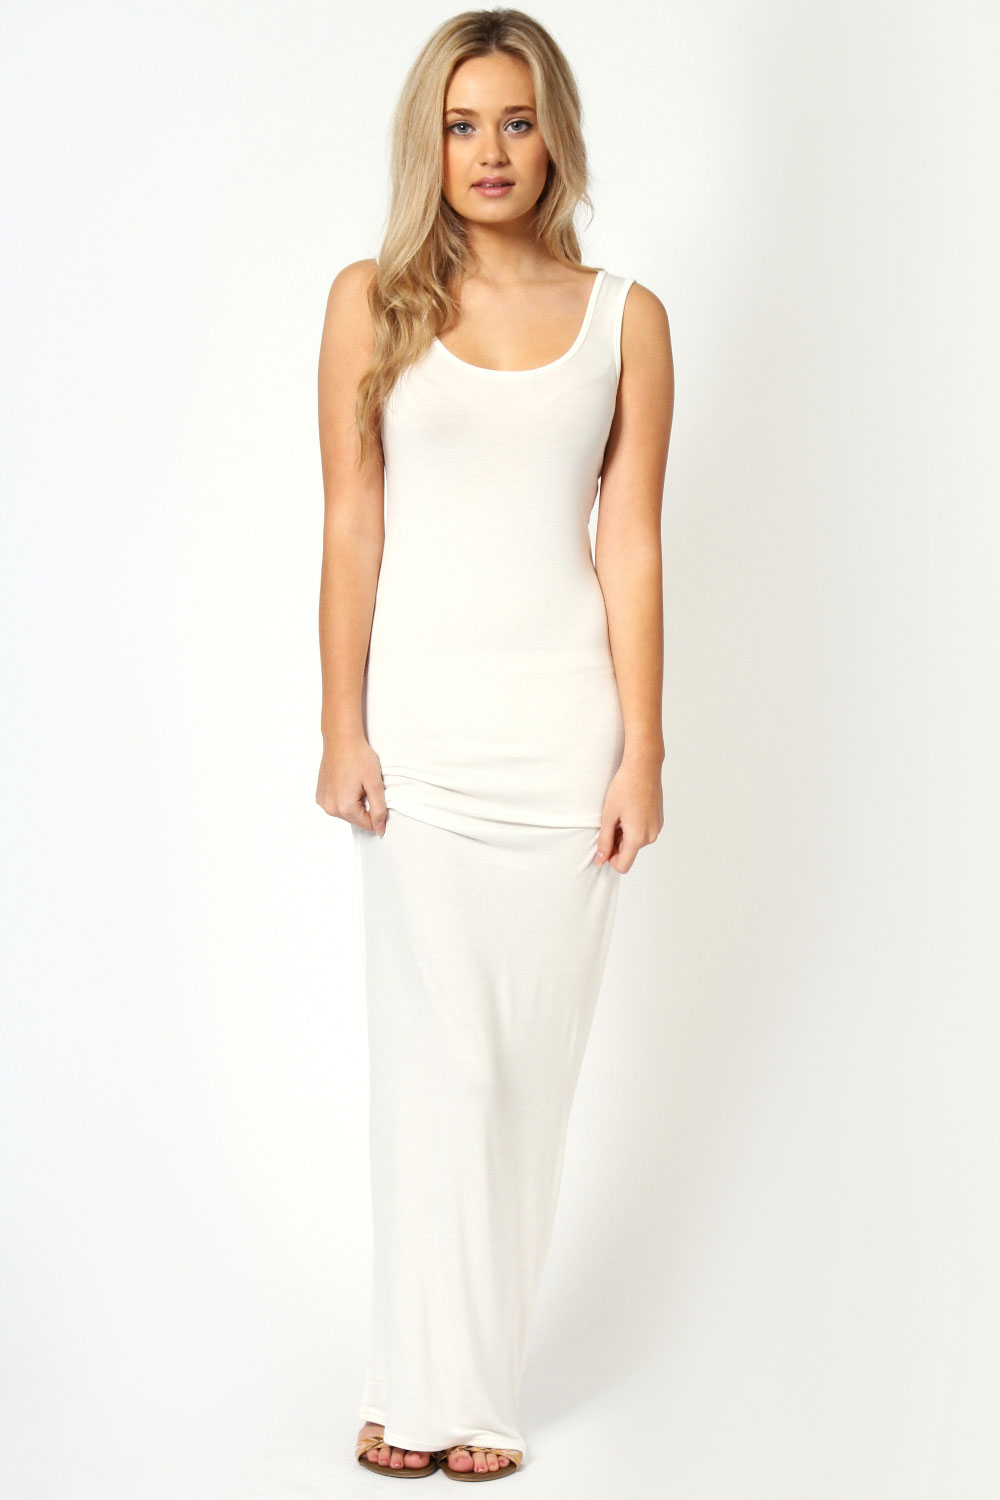 Boohoo-Womens-Ladies-Sandy-Scoop-Neck-Maxi-Full-Length-Sleeveless-Dress